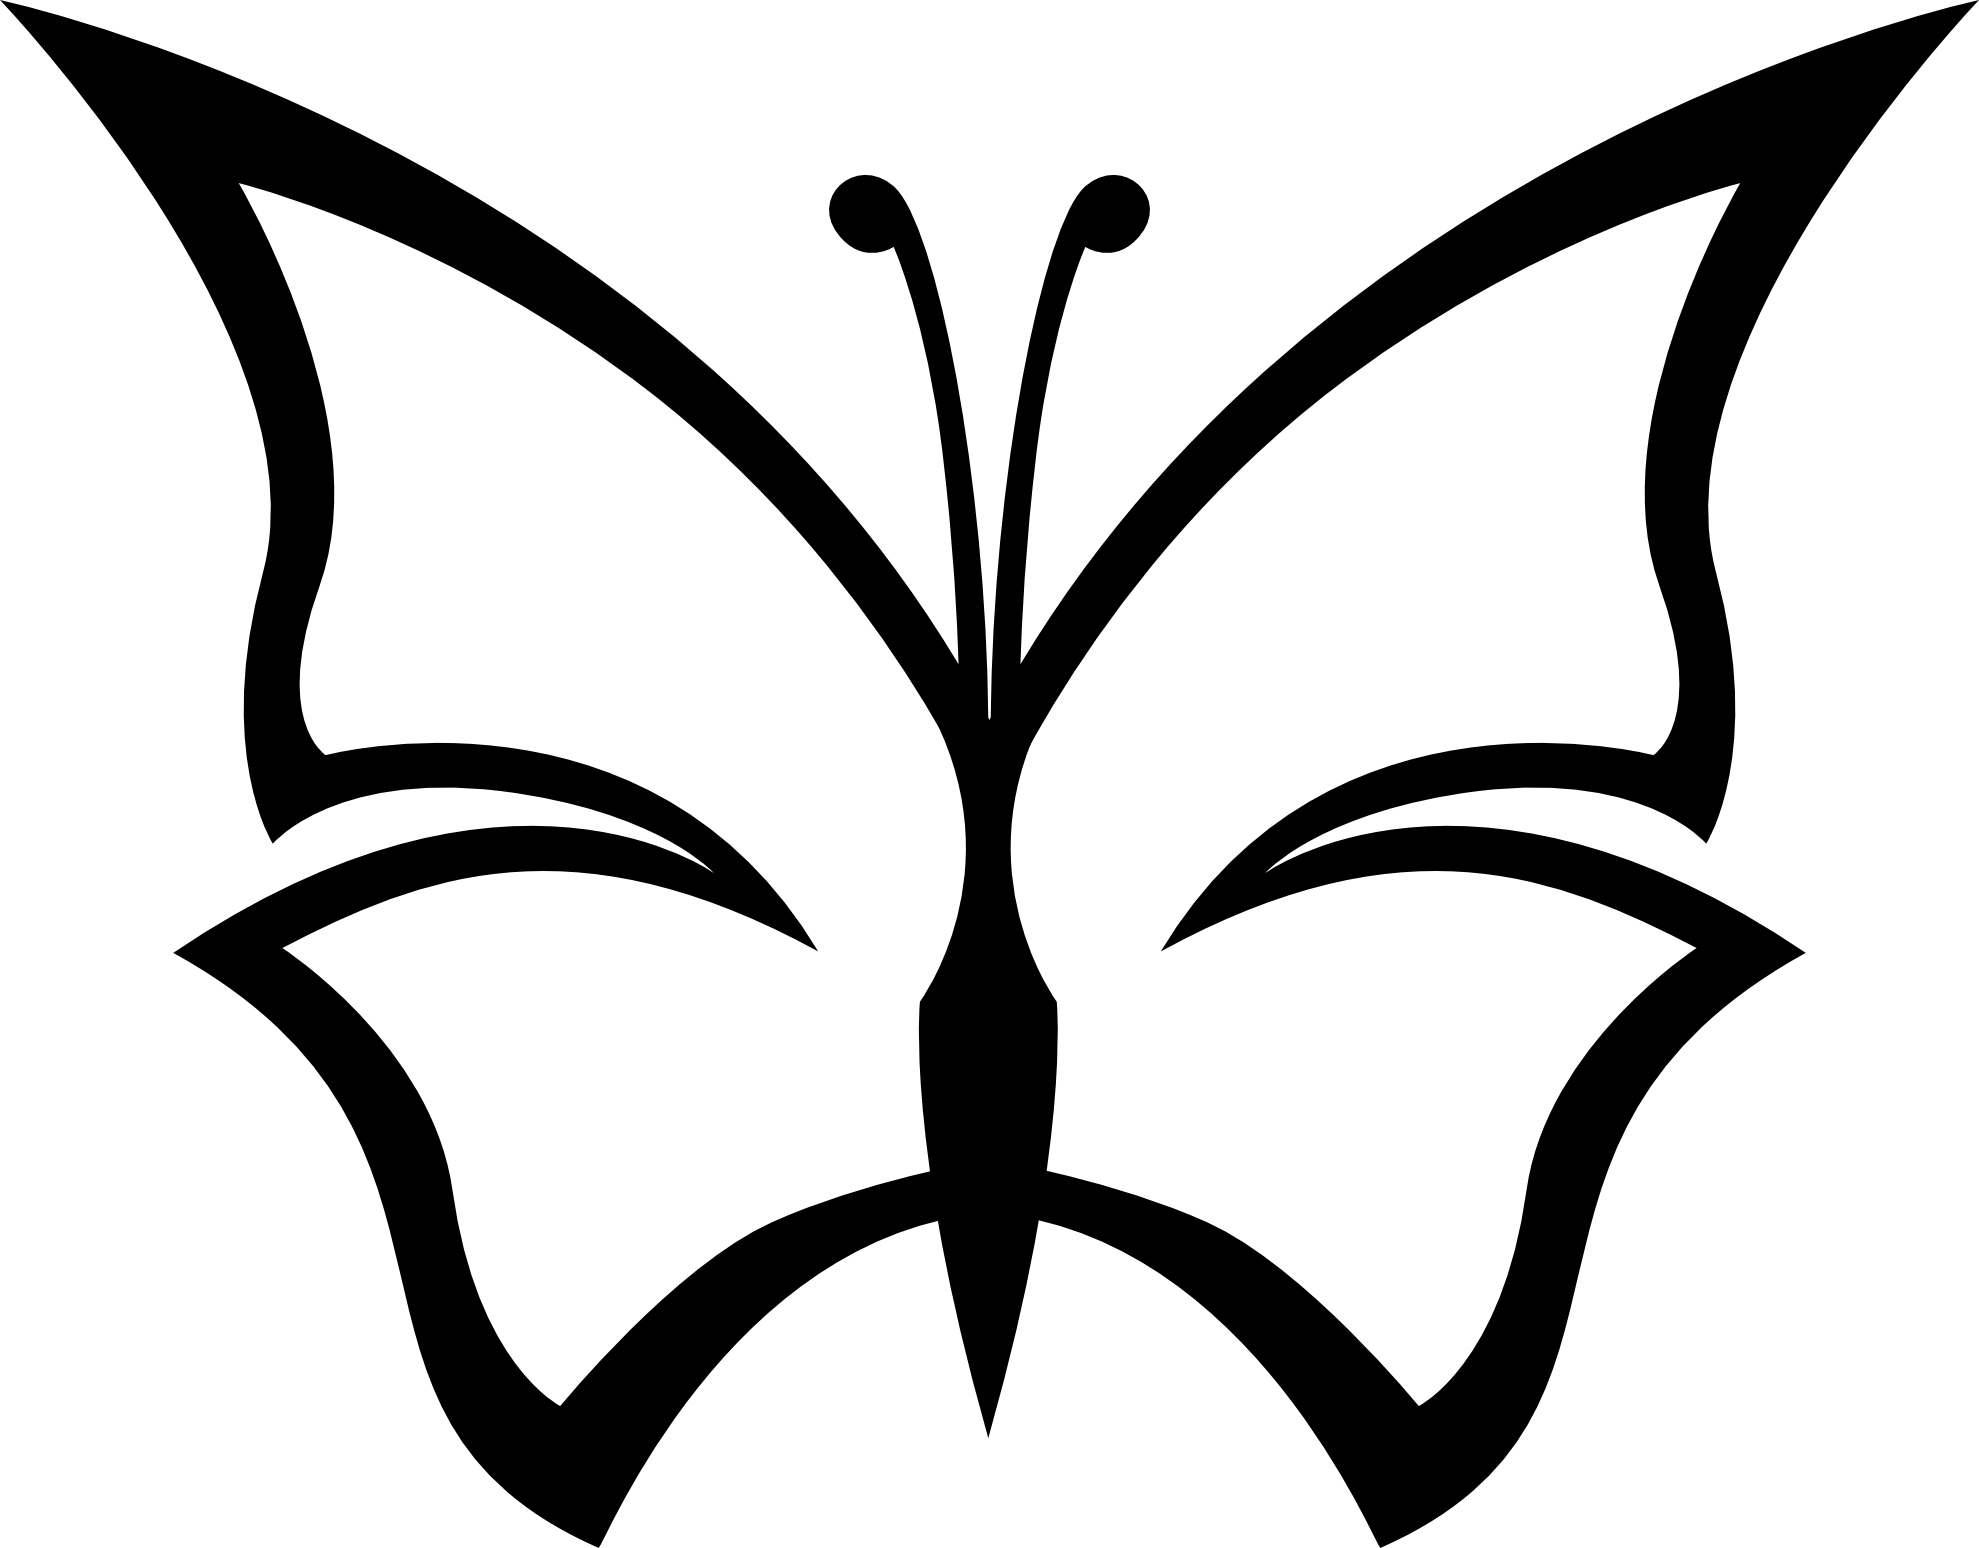 Simple Clip Art Line : Butterfly line drawing clipart best